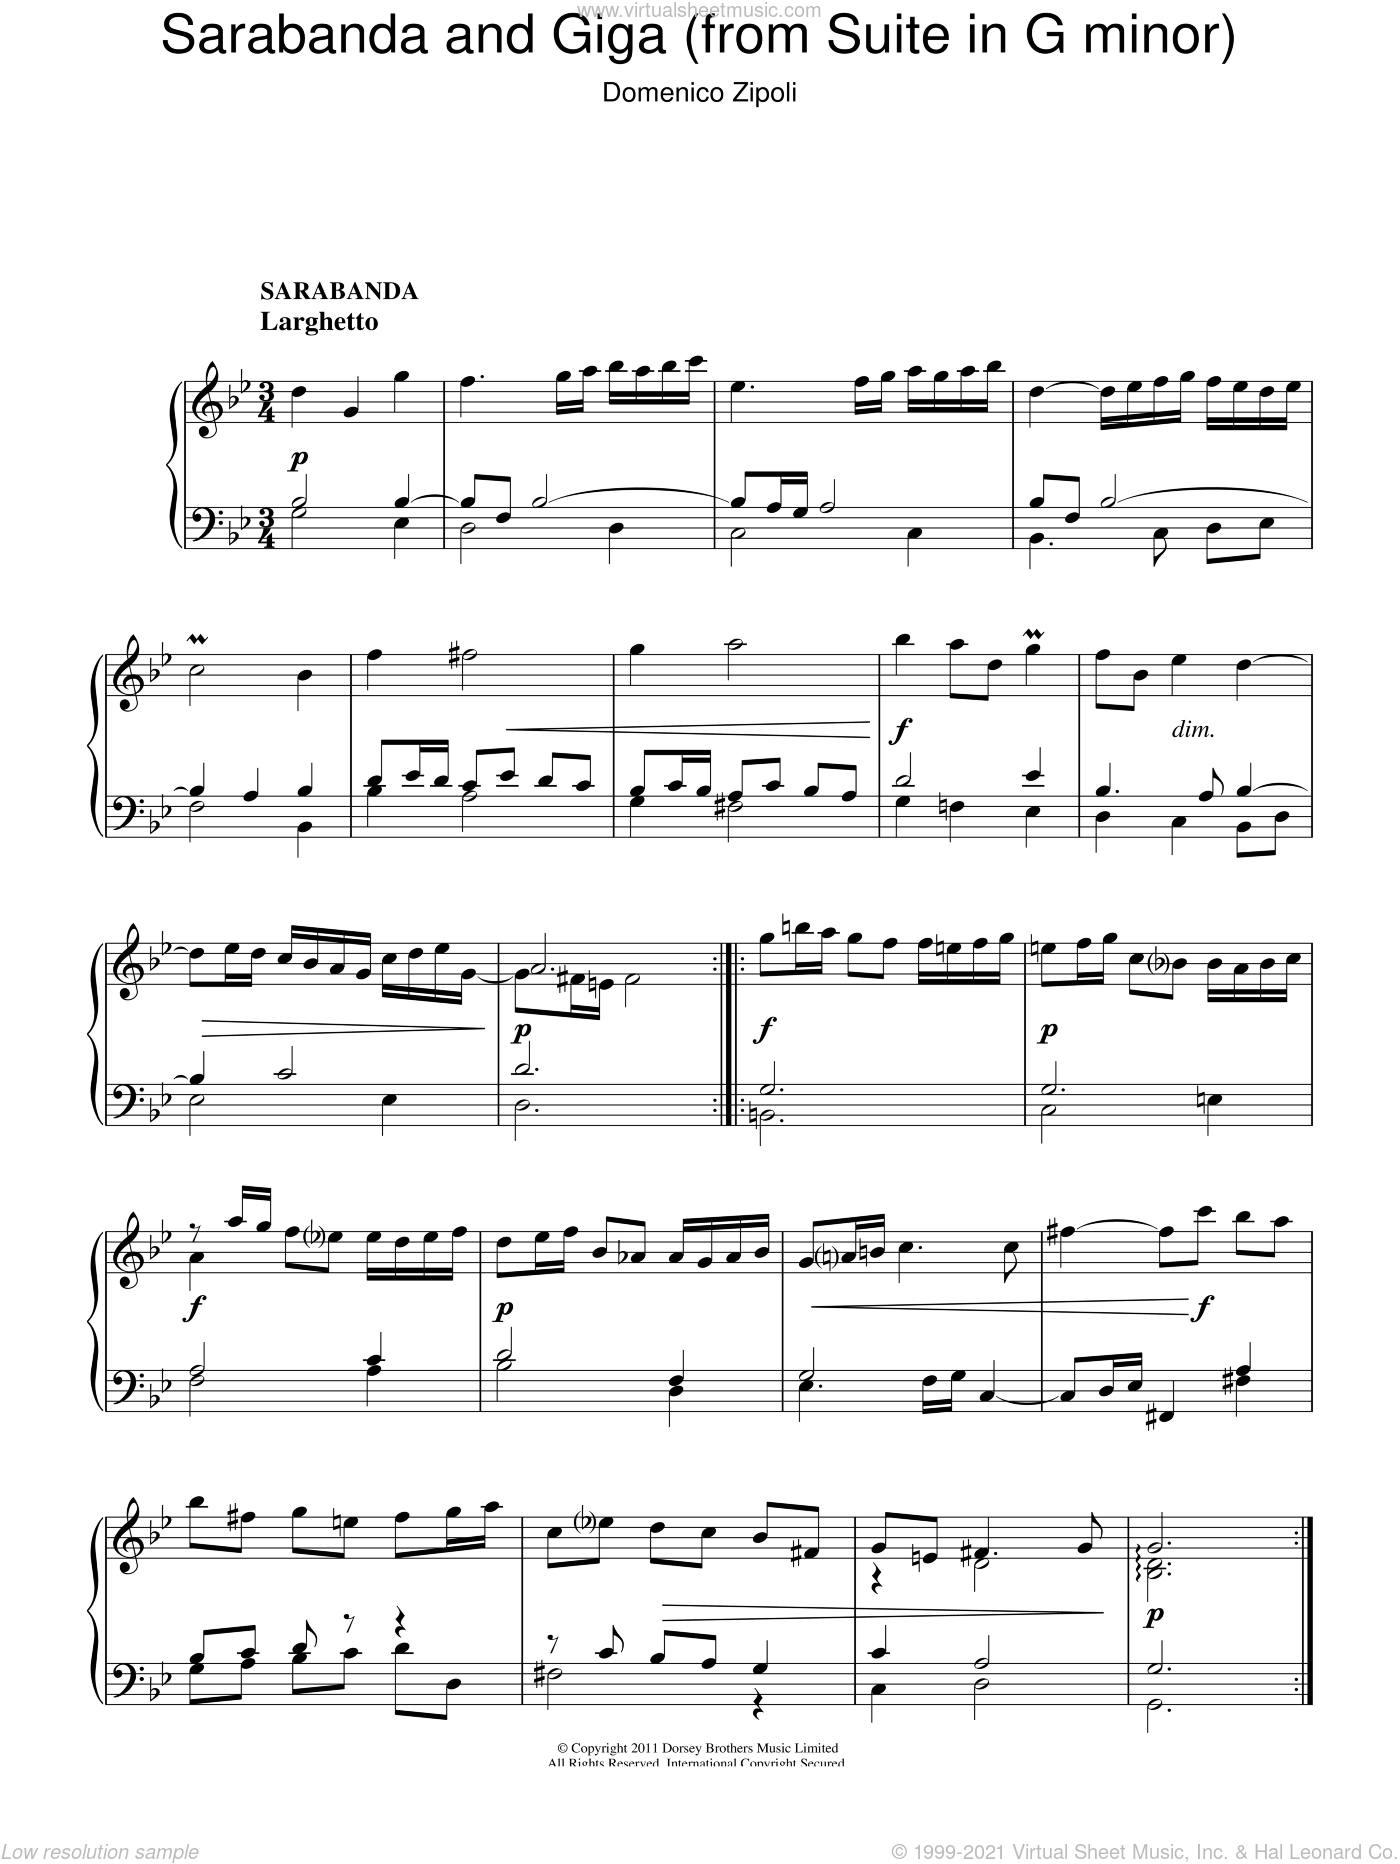 Sarabanda And Giga (from The Suite In G Minor) sheet music for piano solo by Domenico Zipoli, classical score, intermediate skill level